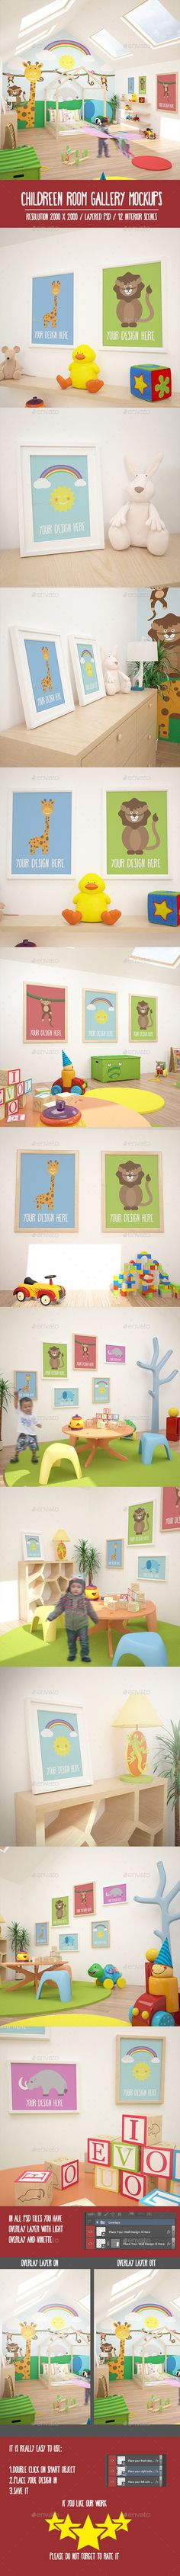 12 Children Room Gallery MockUPs Pack — Photoshop PSD #canvas #product promotion • Available here → https://graphicriver.net/item/12-children-room-gallery-mockups-pack/16300884?ref=pxcr